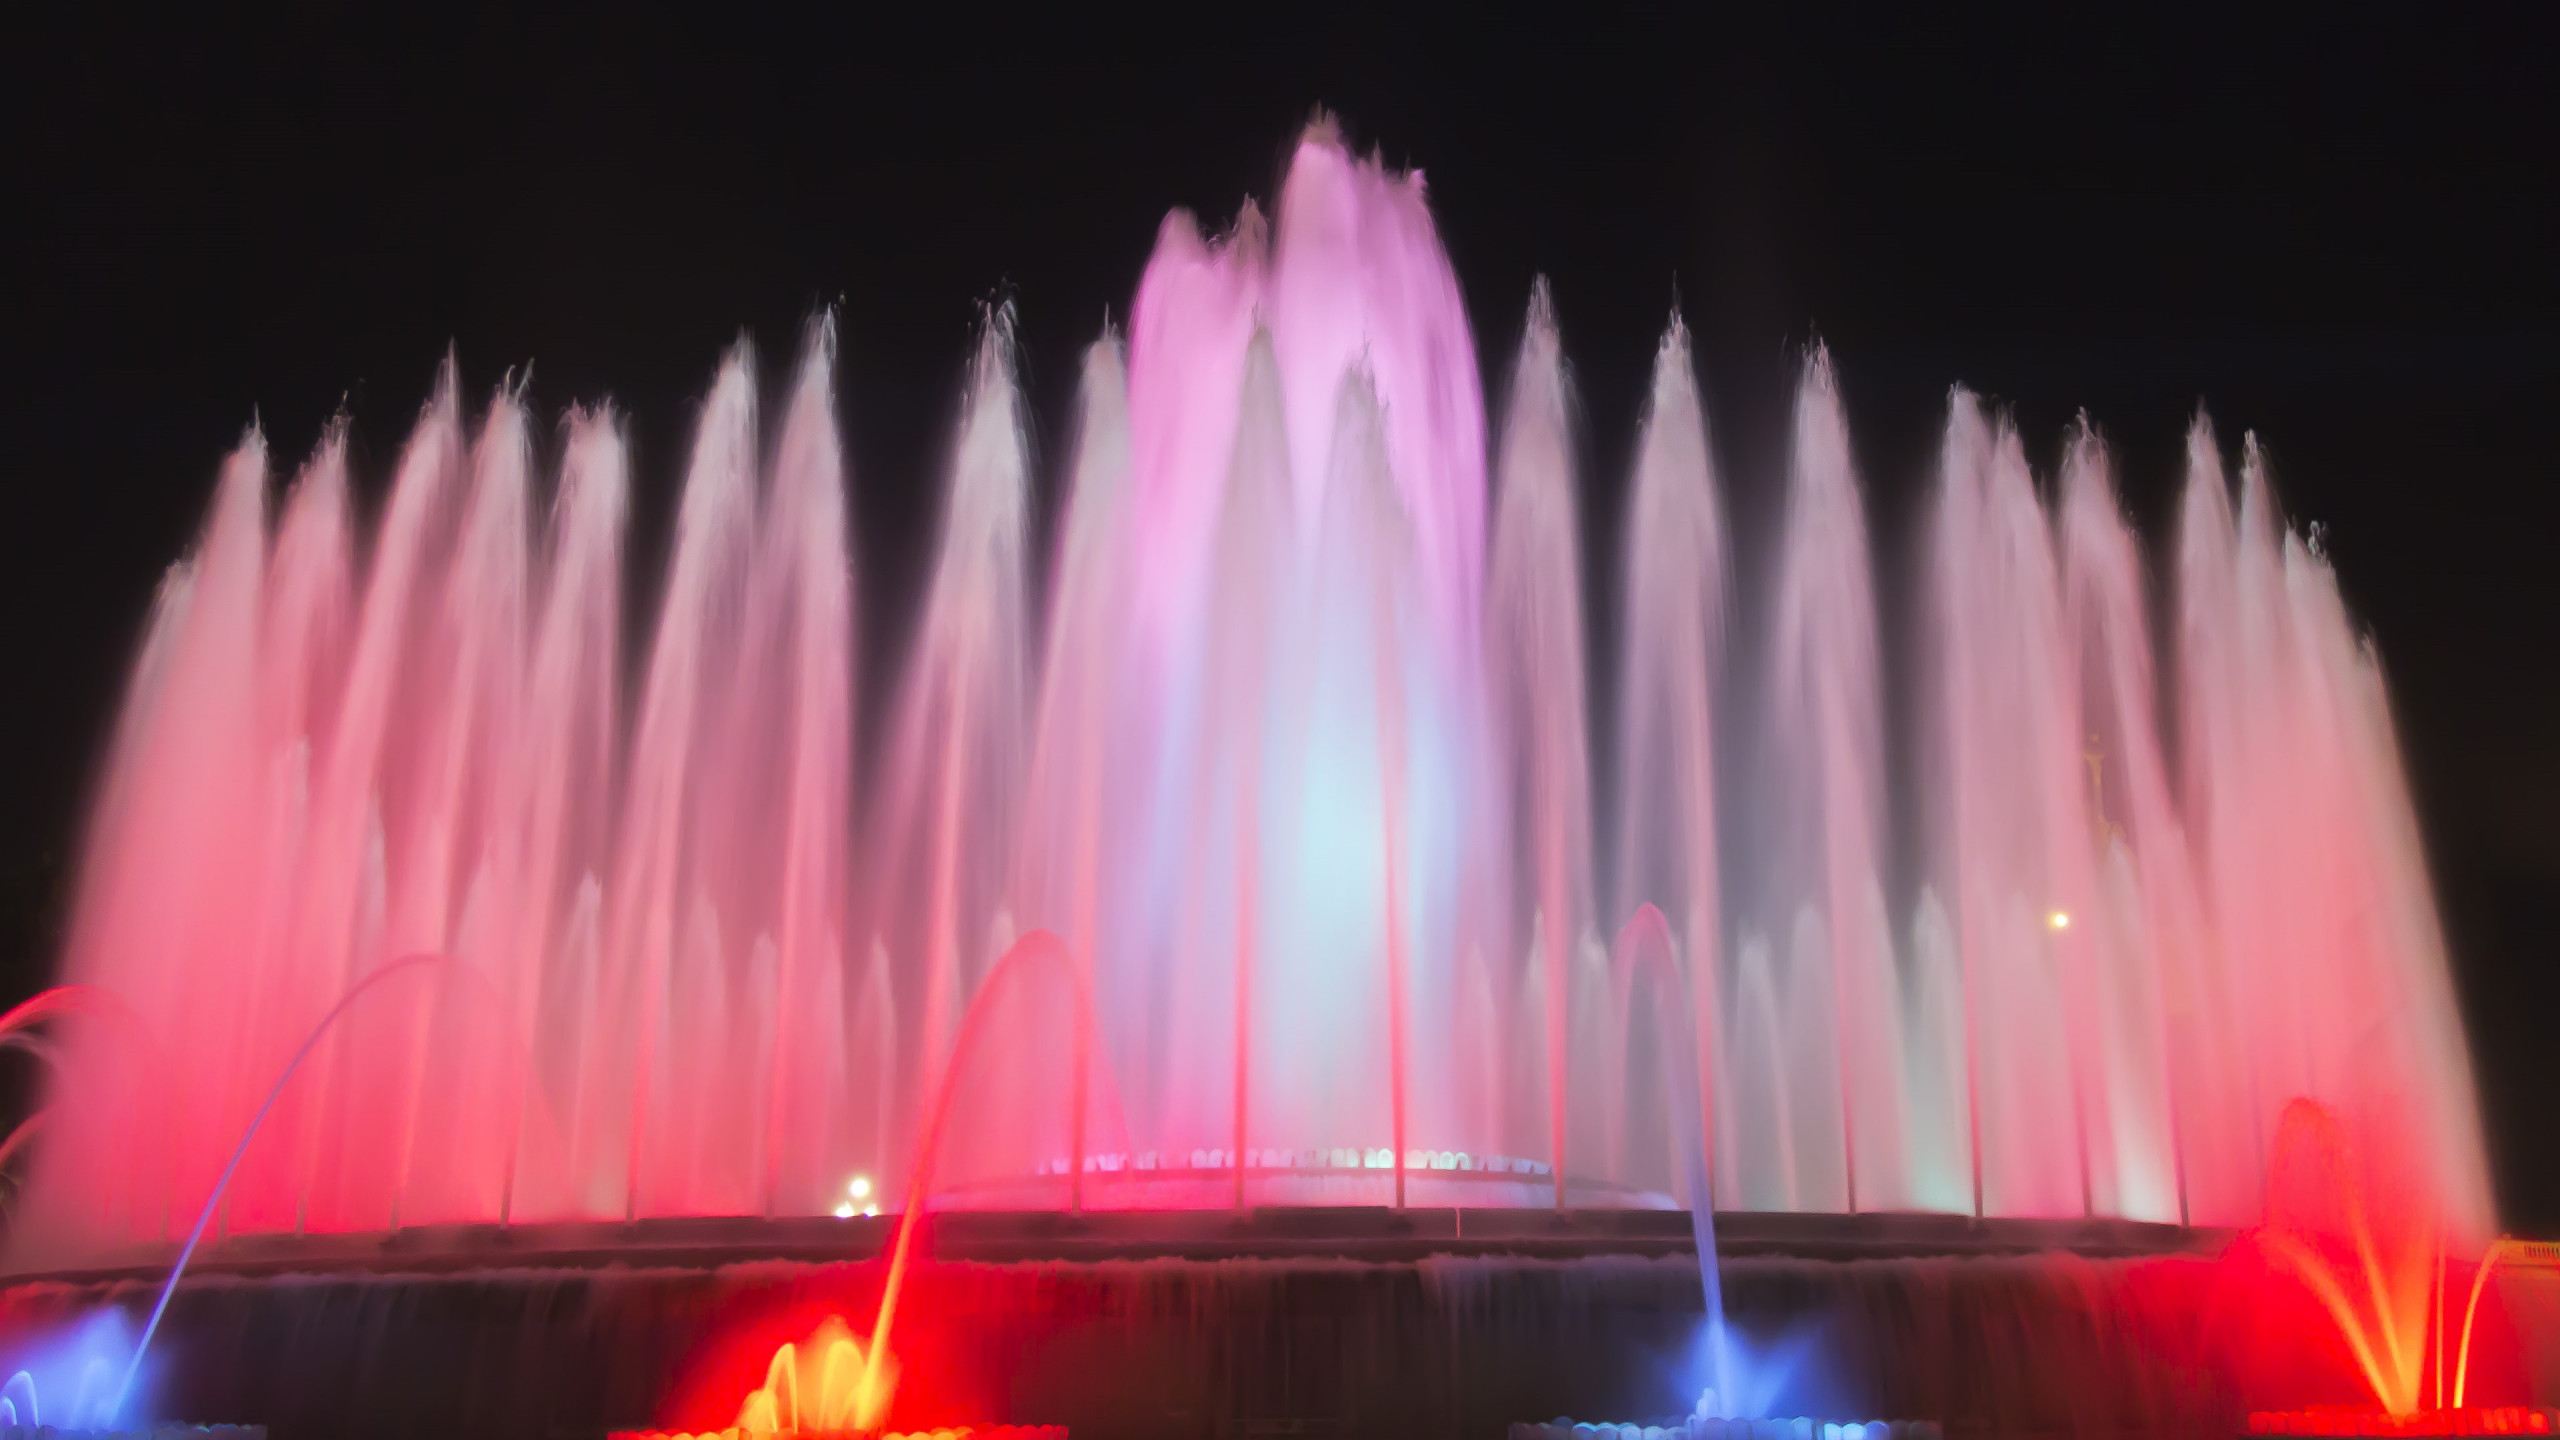 Fountains in Barcelona wallpaper 2560x1440